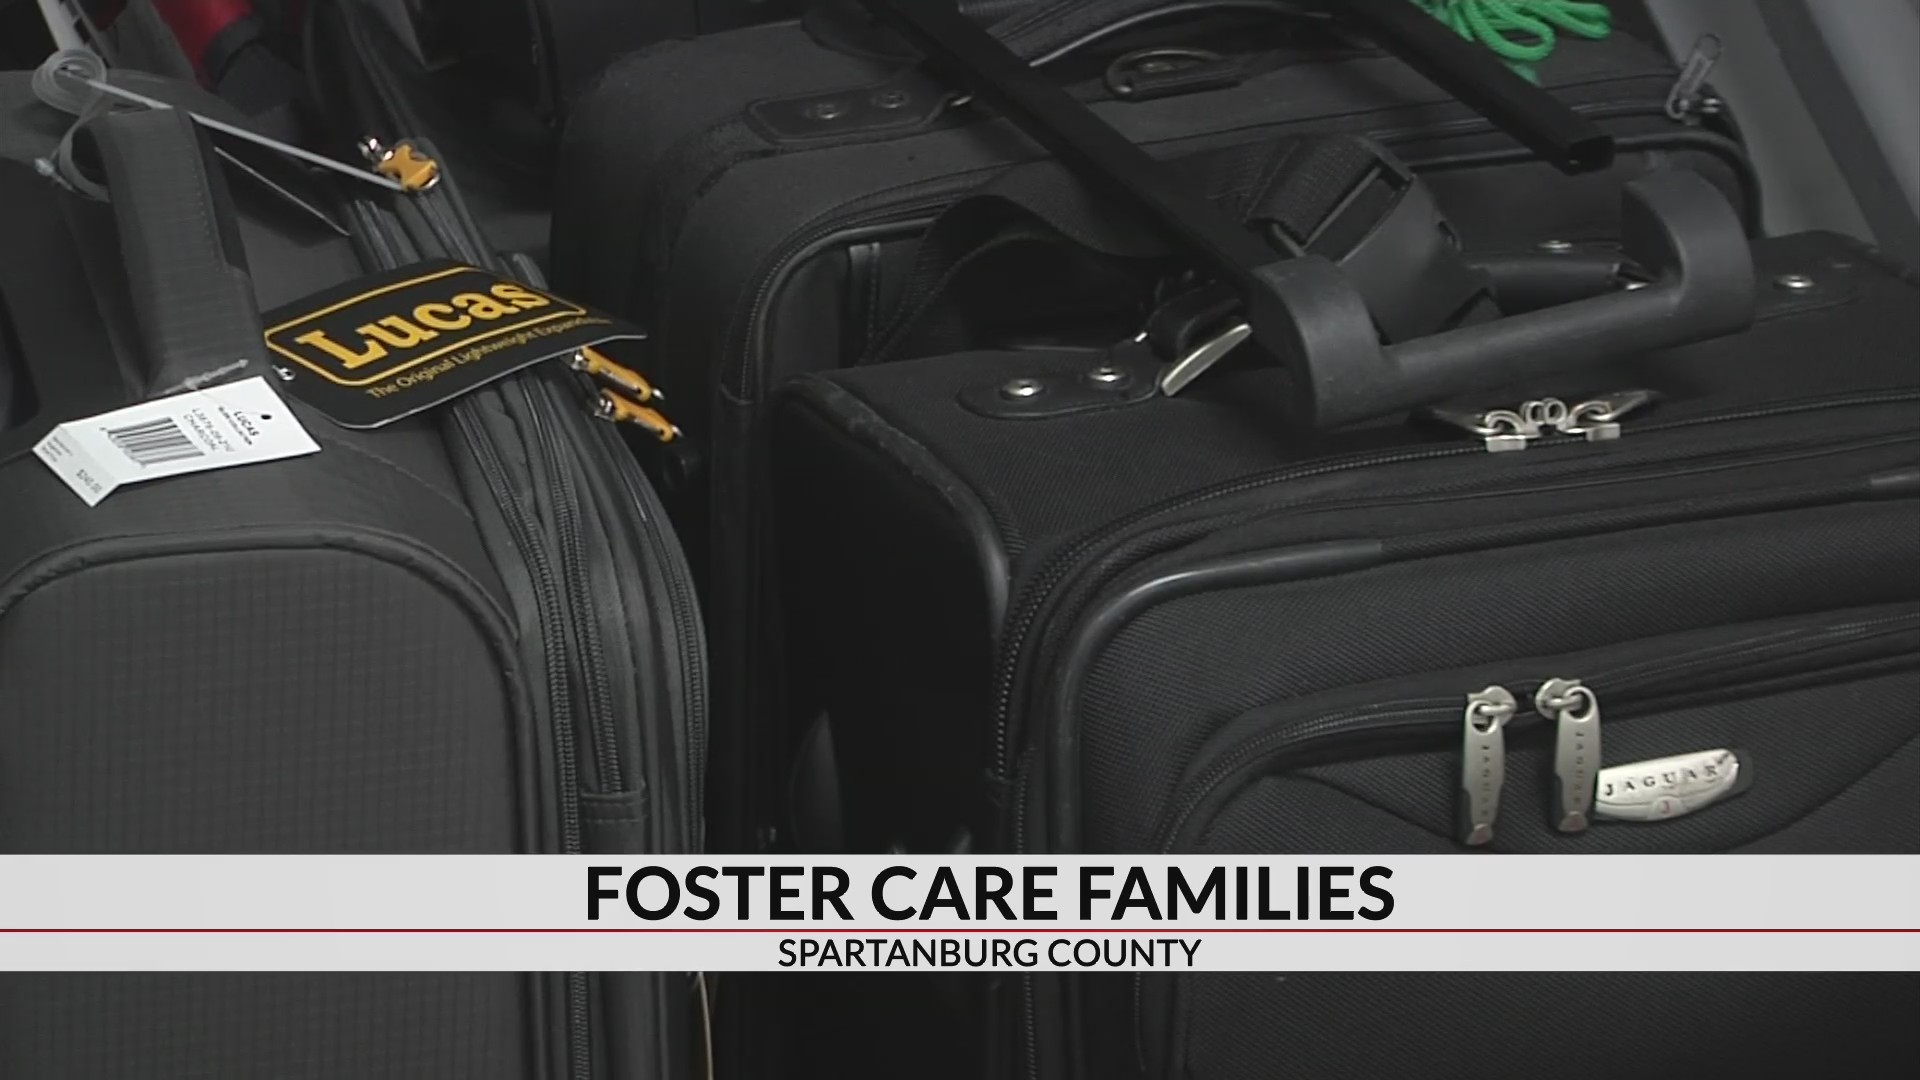 Help_foster_children_who_need_luggage_wh_0_20190522225221